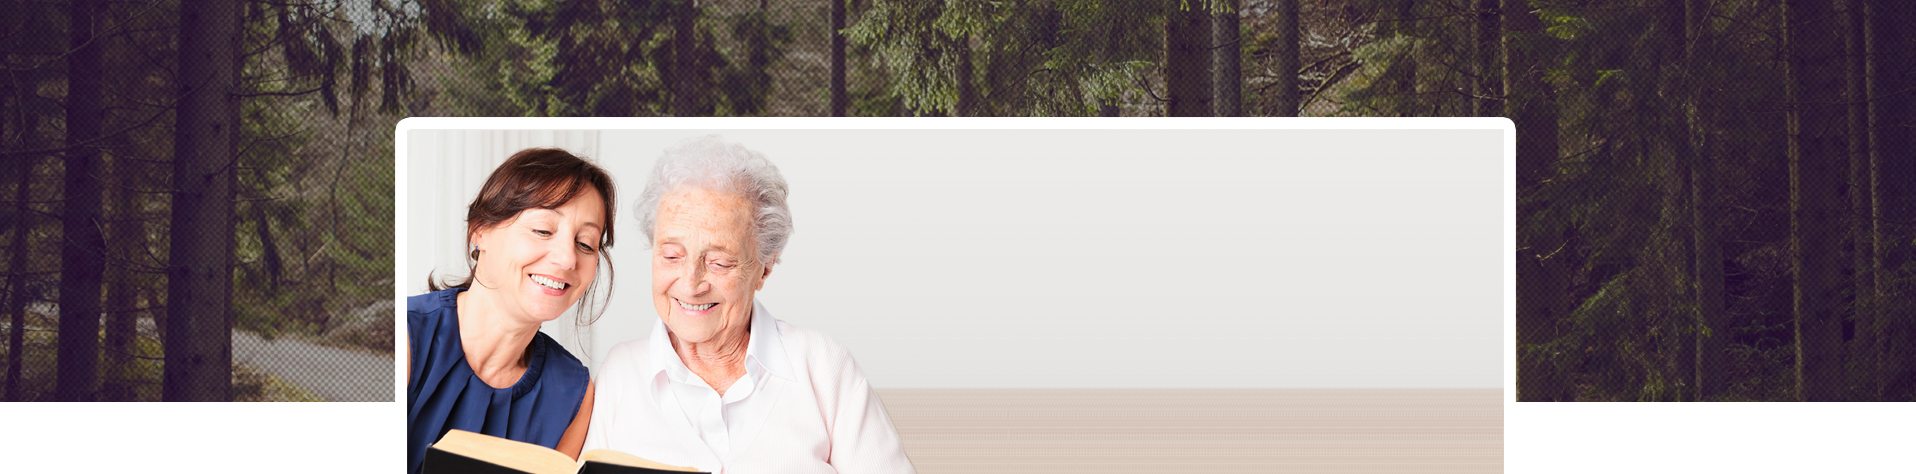 A picture of an elderly woman with her befrienderset amongst a background image of trees.